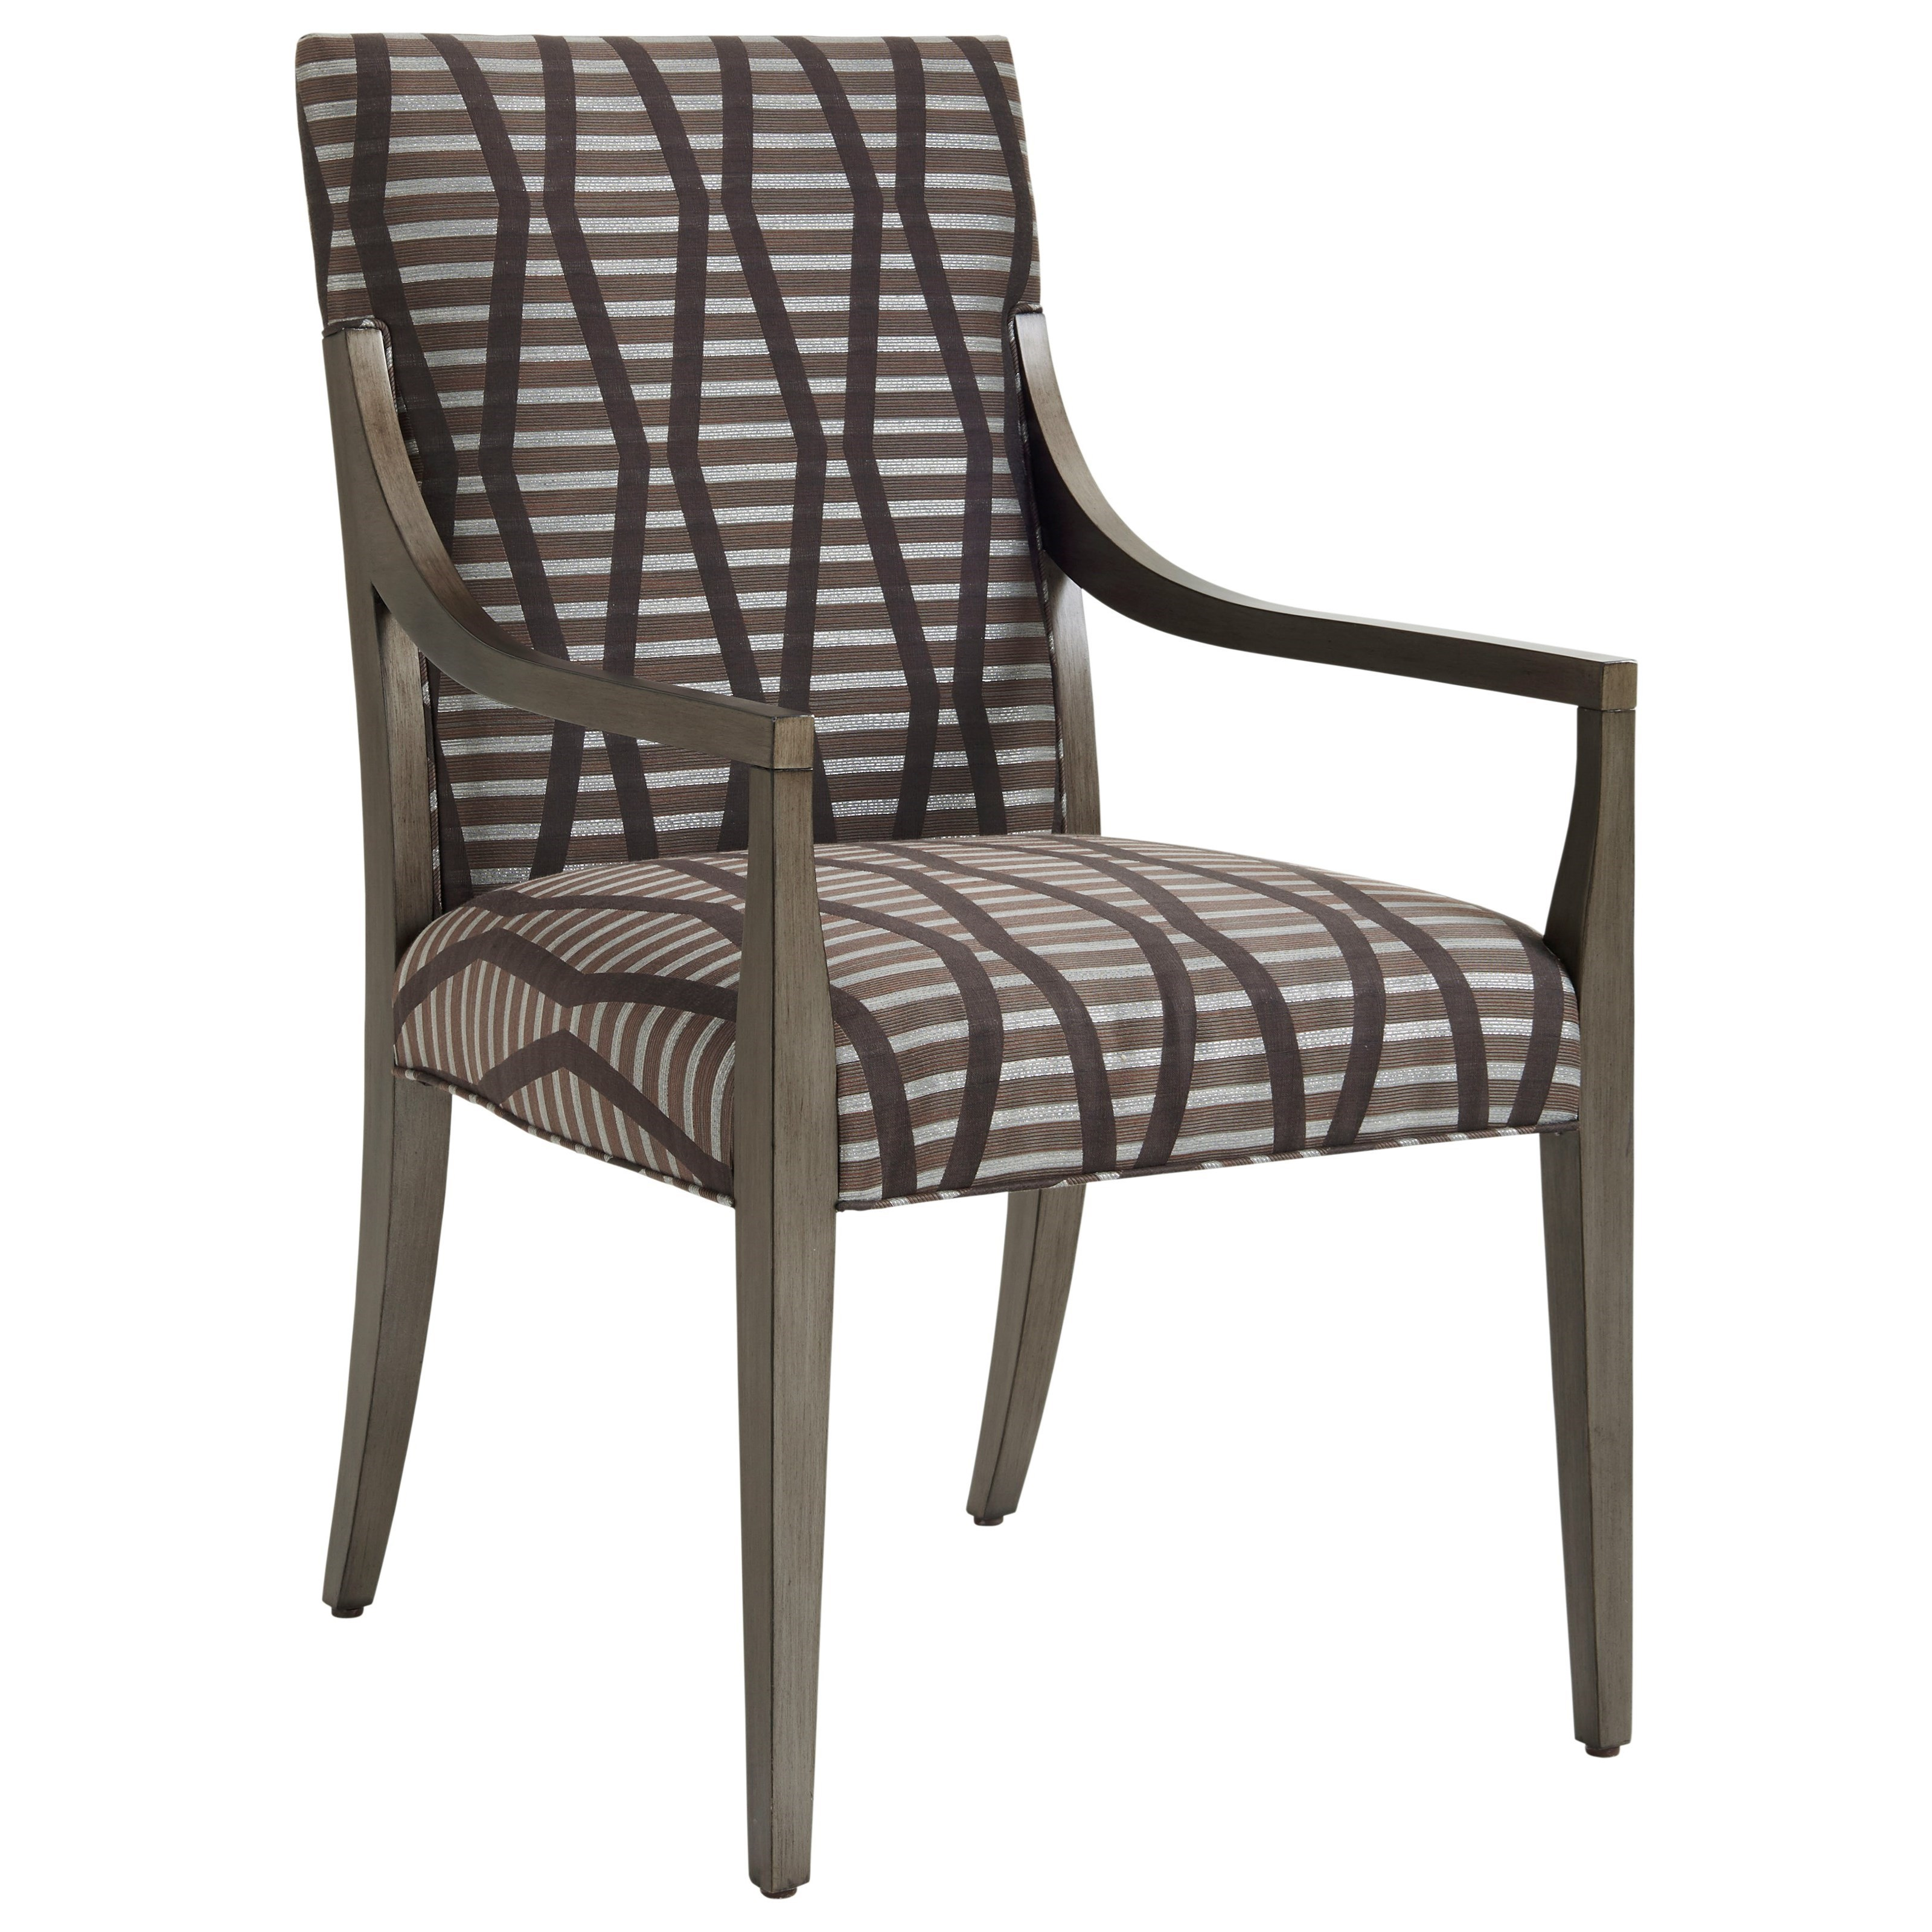 Ariana Saverne Upholstered Arm Chair by Lexington at Furniture Fair - North Carolina